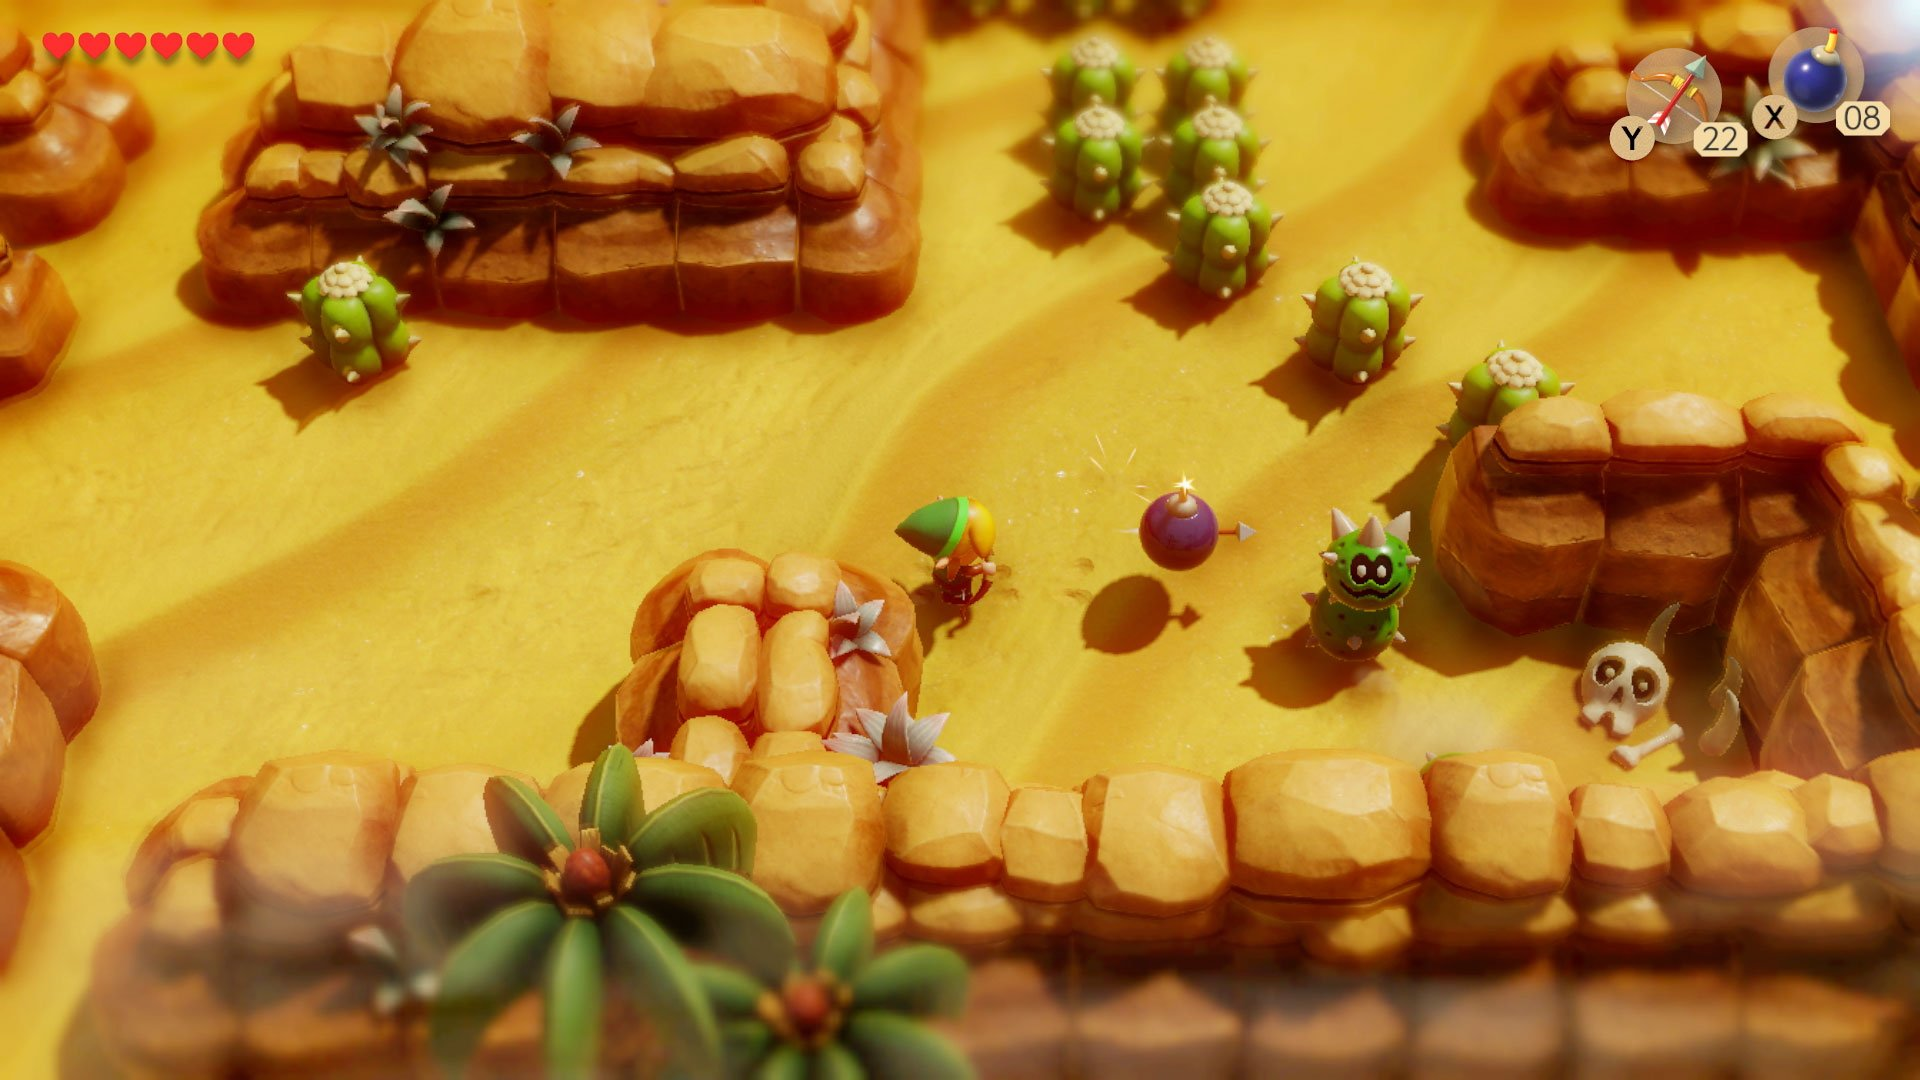 How long to beat Link's Awakening?